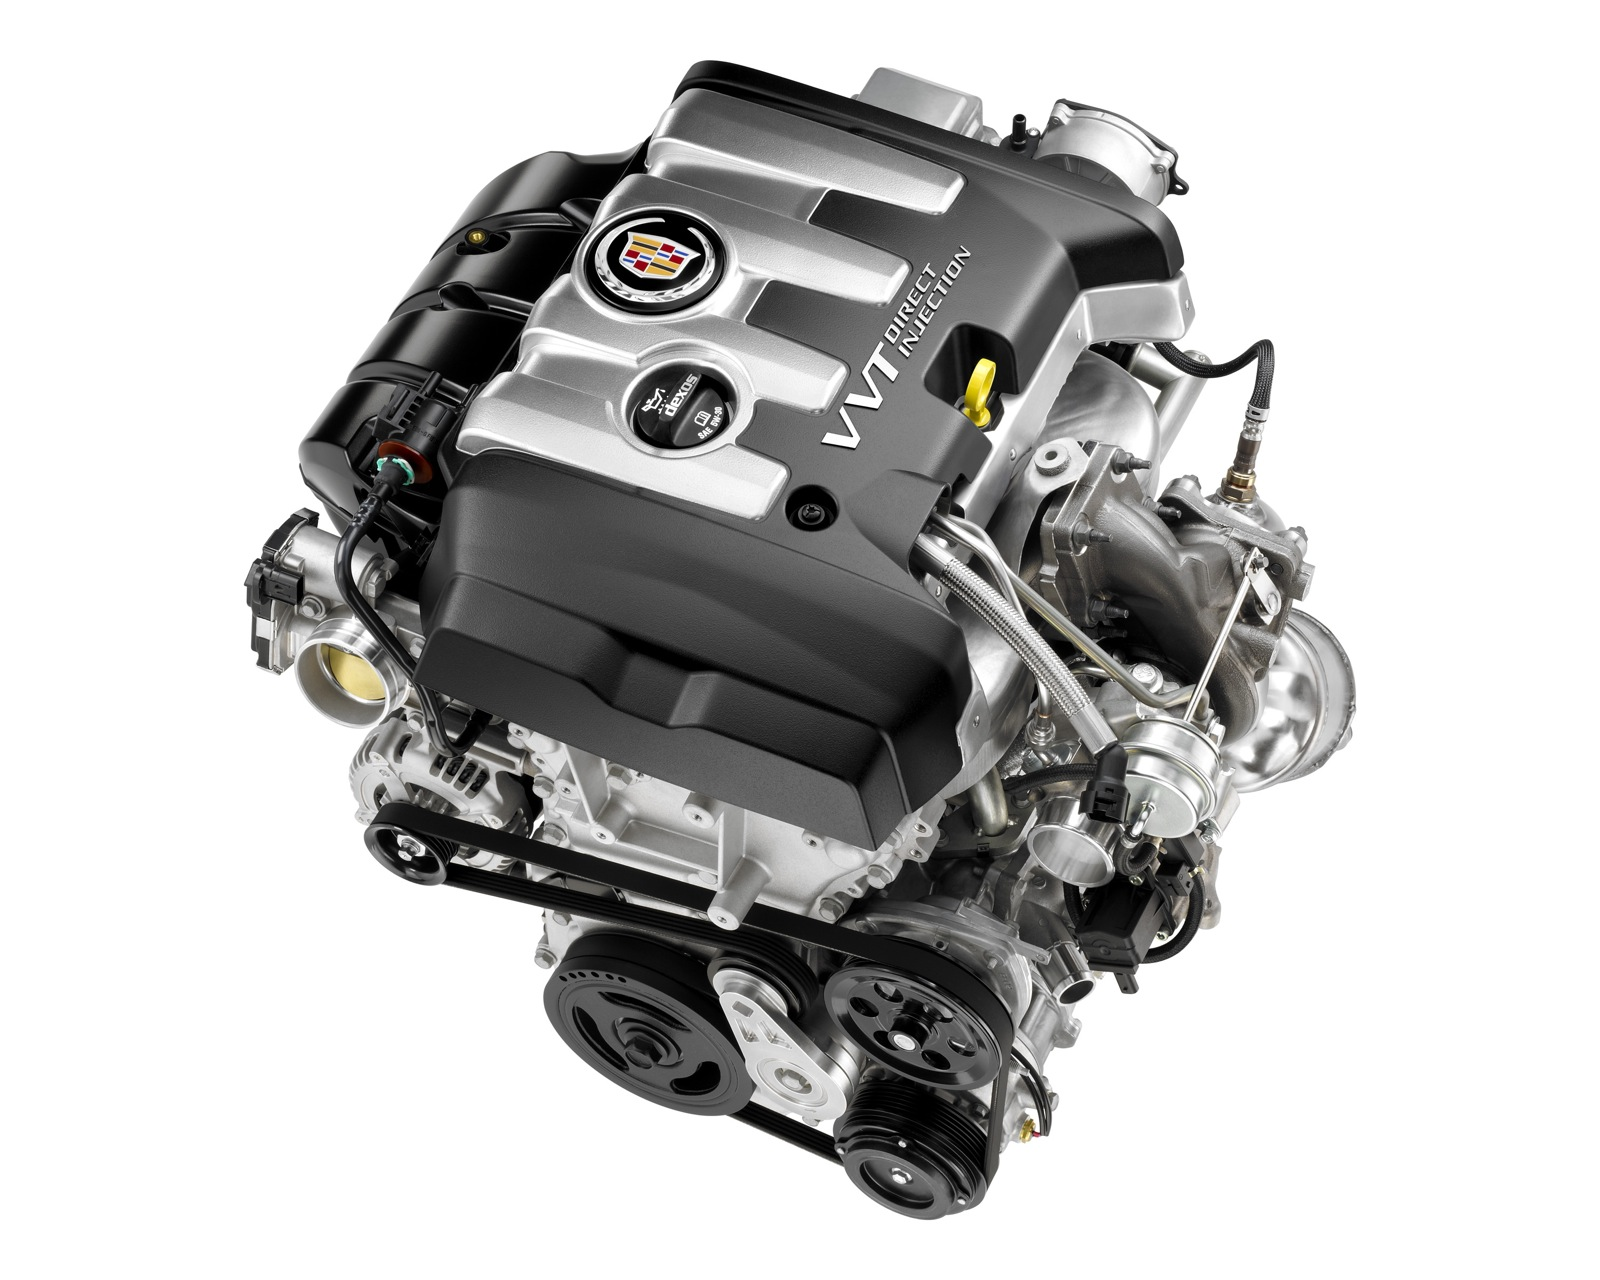 engines in restoration and rural cadillac carroll custom pilot performance texas a point wordpress